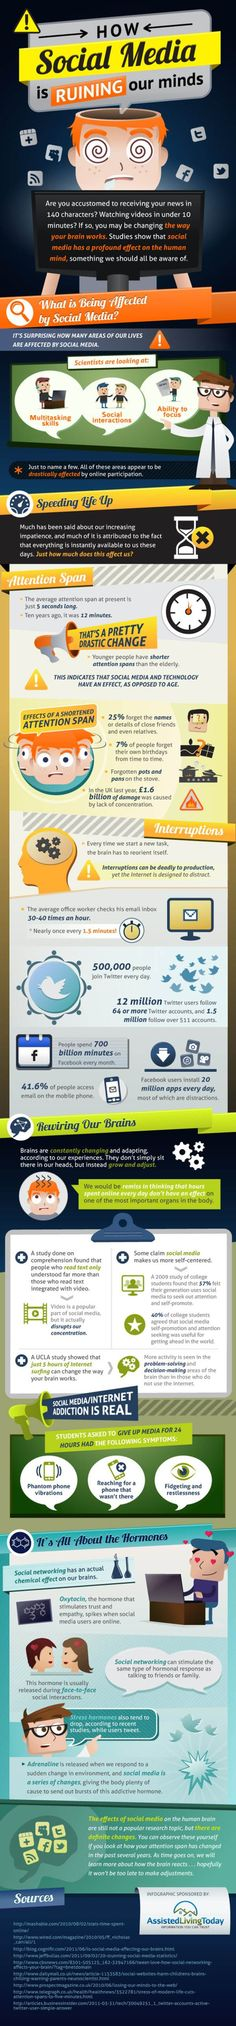 How social media ist running our minds